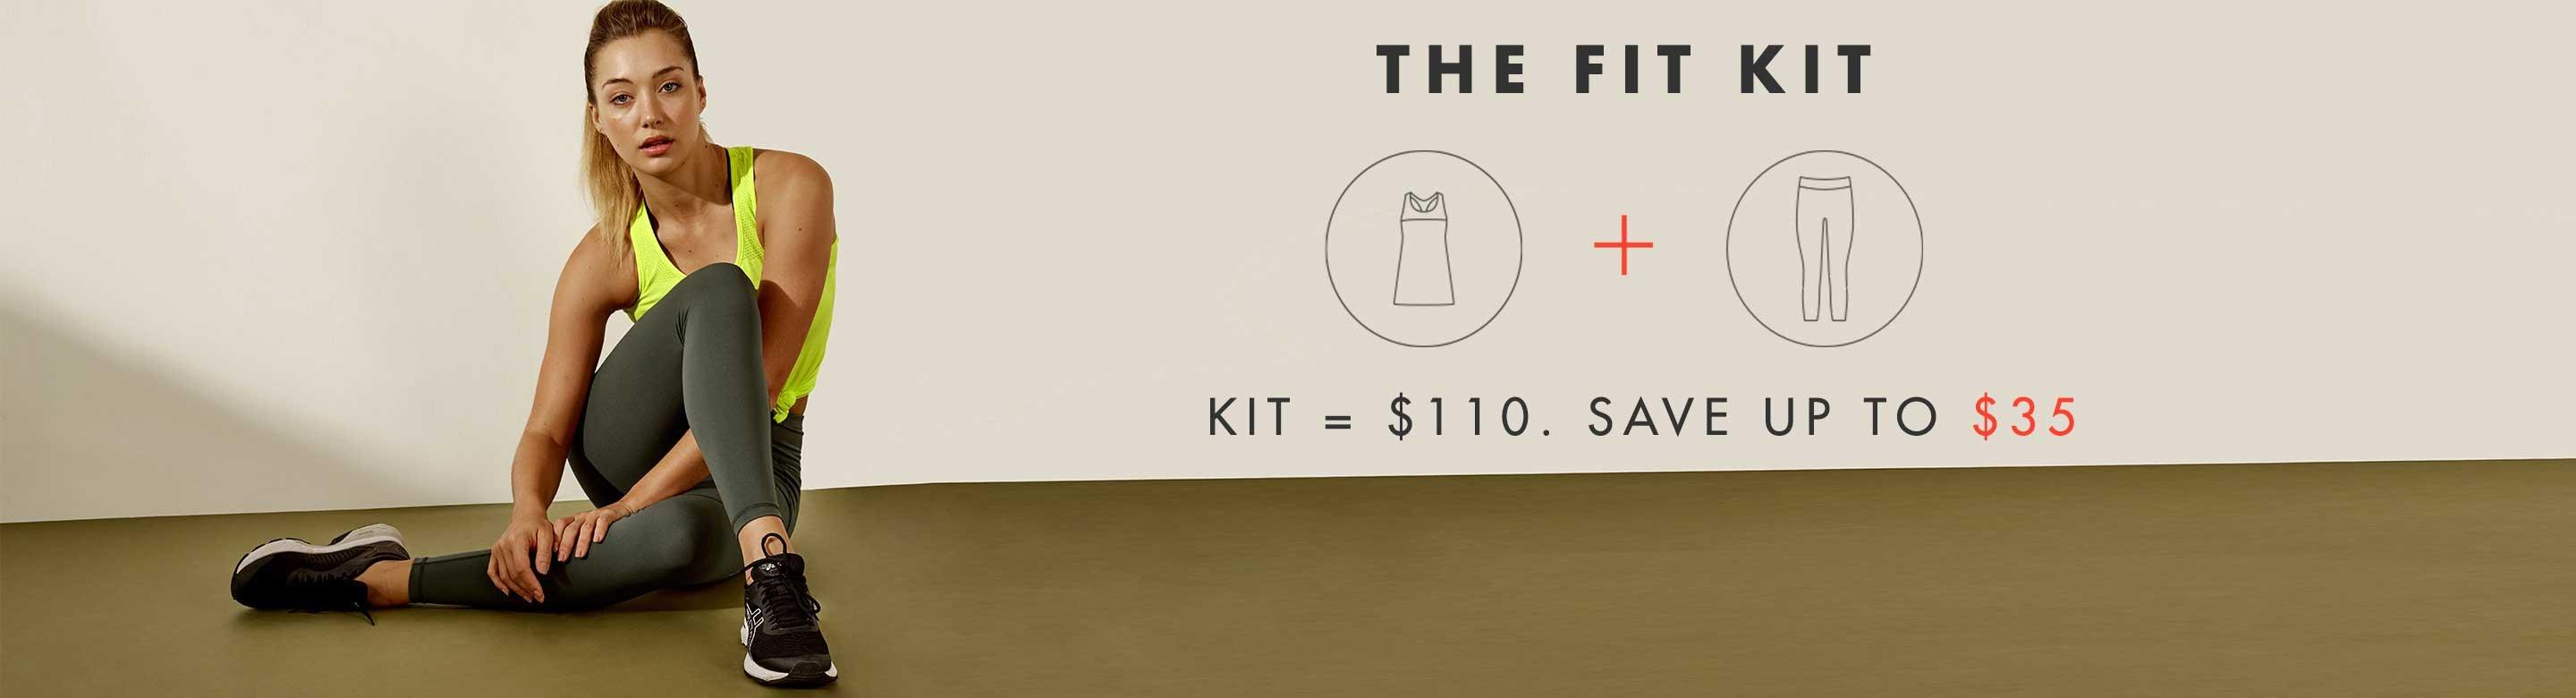 The Fit Kit